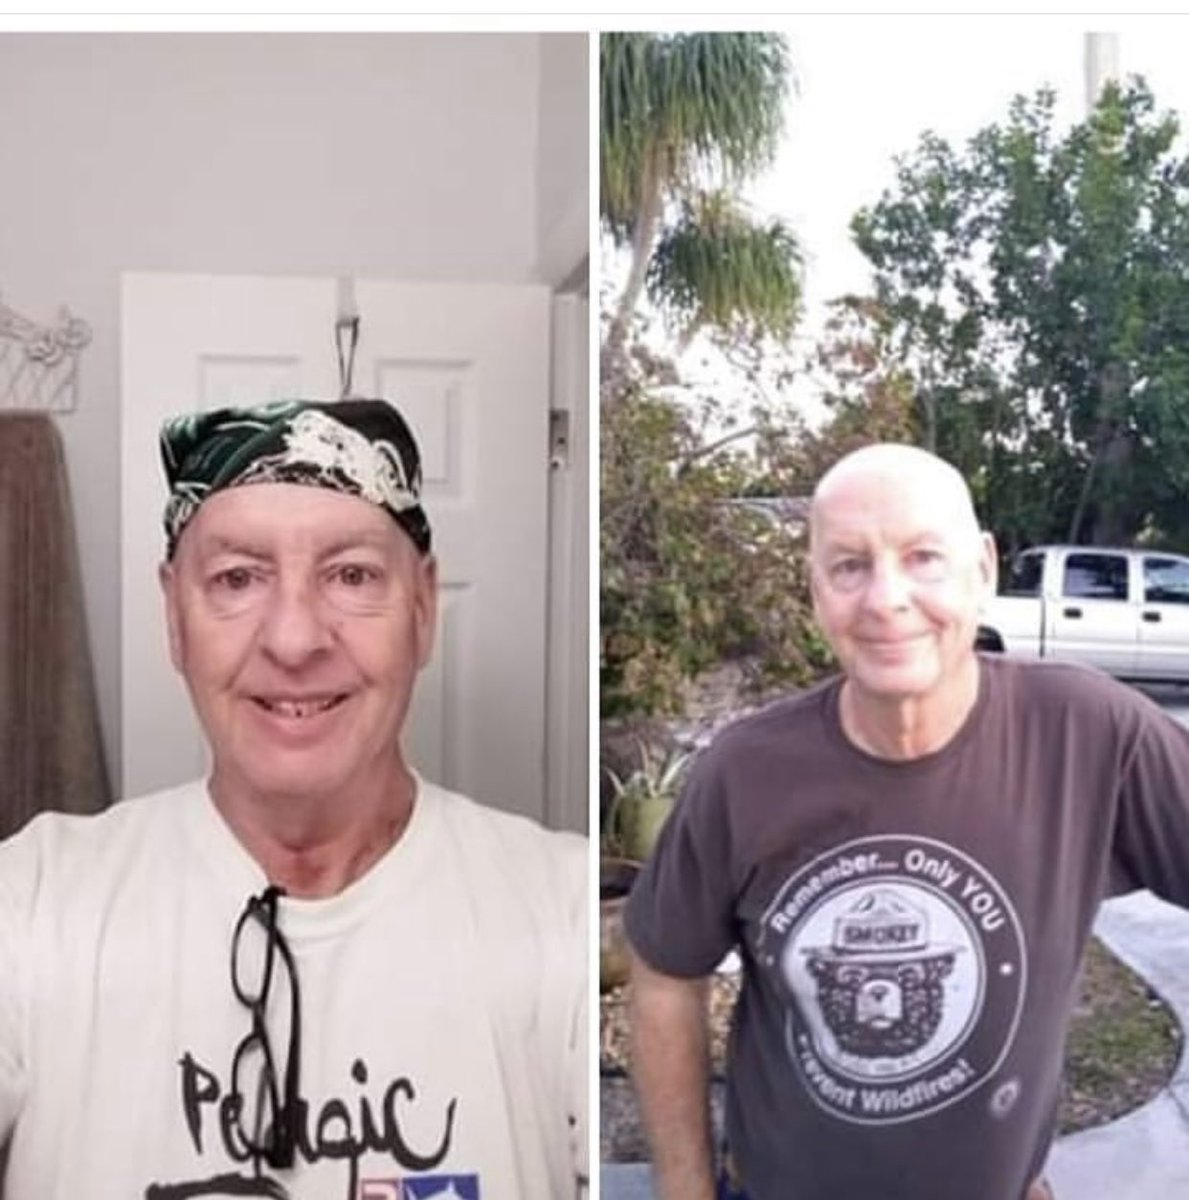 My brother started to lose his hair, so he shaved it off #Beatcancer Scott https://t.co/D93J36UNBG